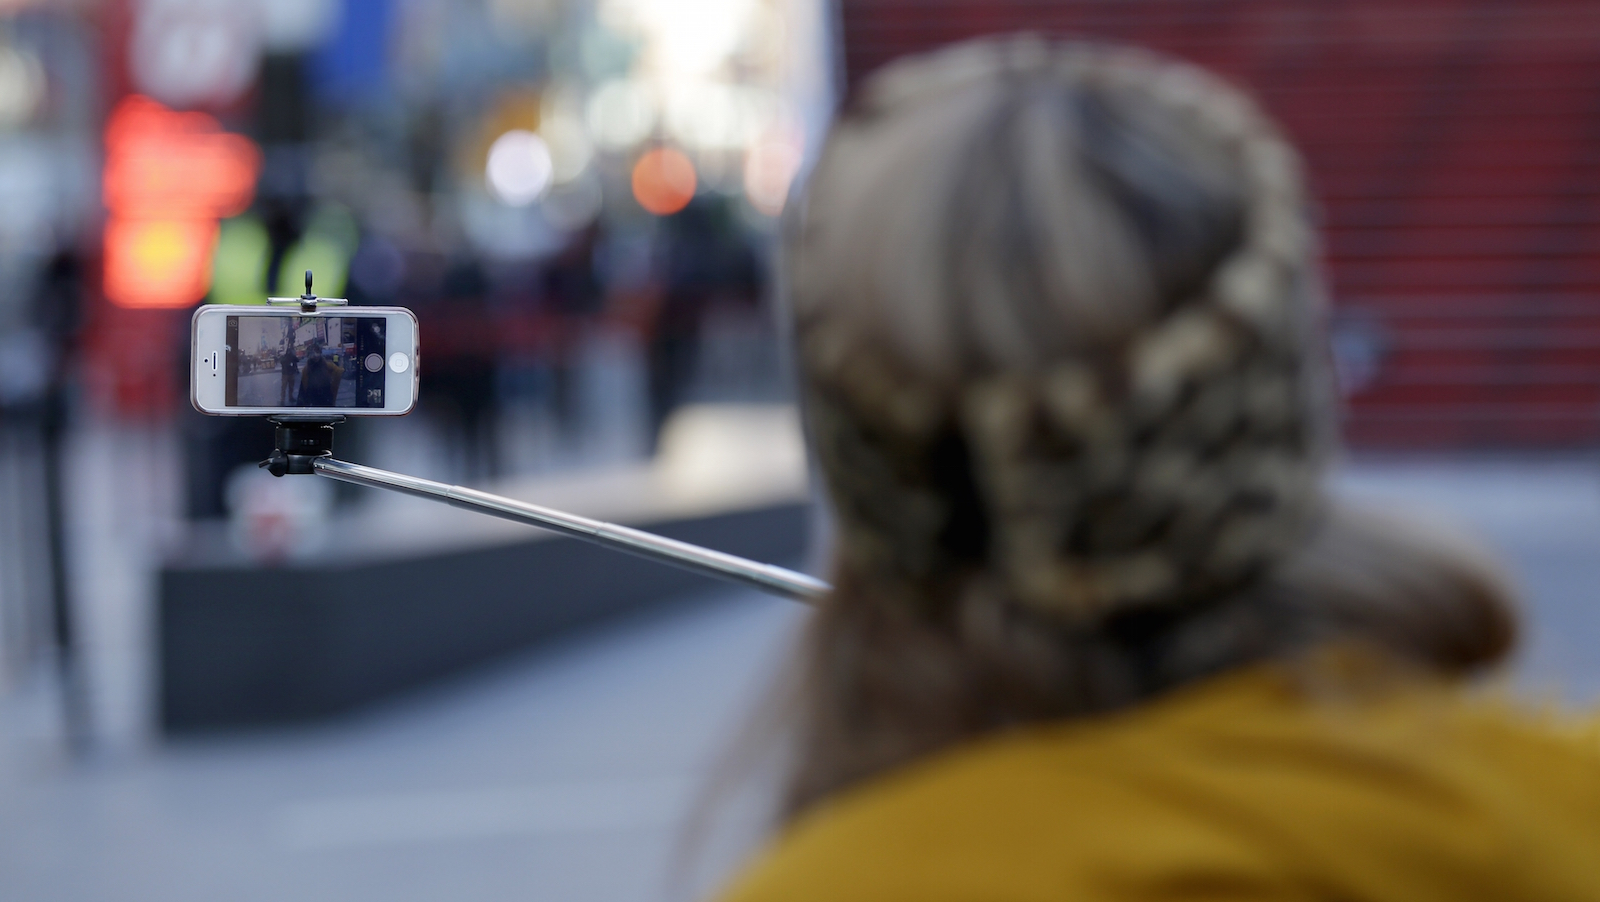 Sandy Johal uses a selfie stick to take a picture of herself in Times Square in New York, Thursday, Jan. 8, 2015. Relatively new gadgets called selfie sticks make it easy to take your own wide-angled self-portraits or group shots. Fans say the expandable rods, which allow users to hold their cellphones a few feet away, are the ultimate convenience: no more bothering passers-by to take pictures, no more fretting about strangers taking lousy shots or running off with a pricey iPhone.